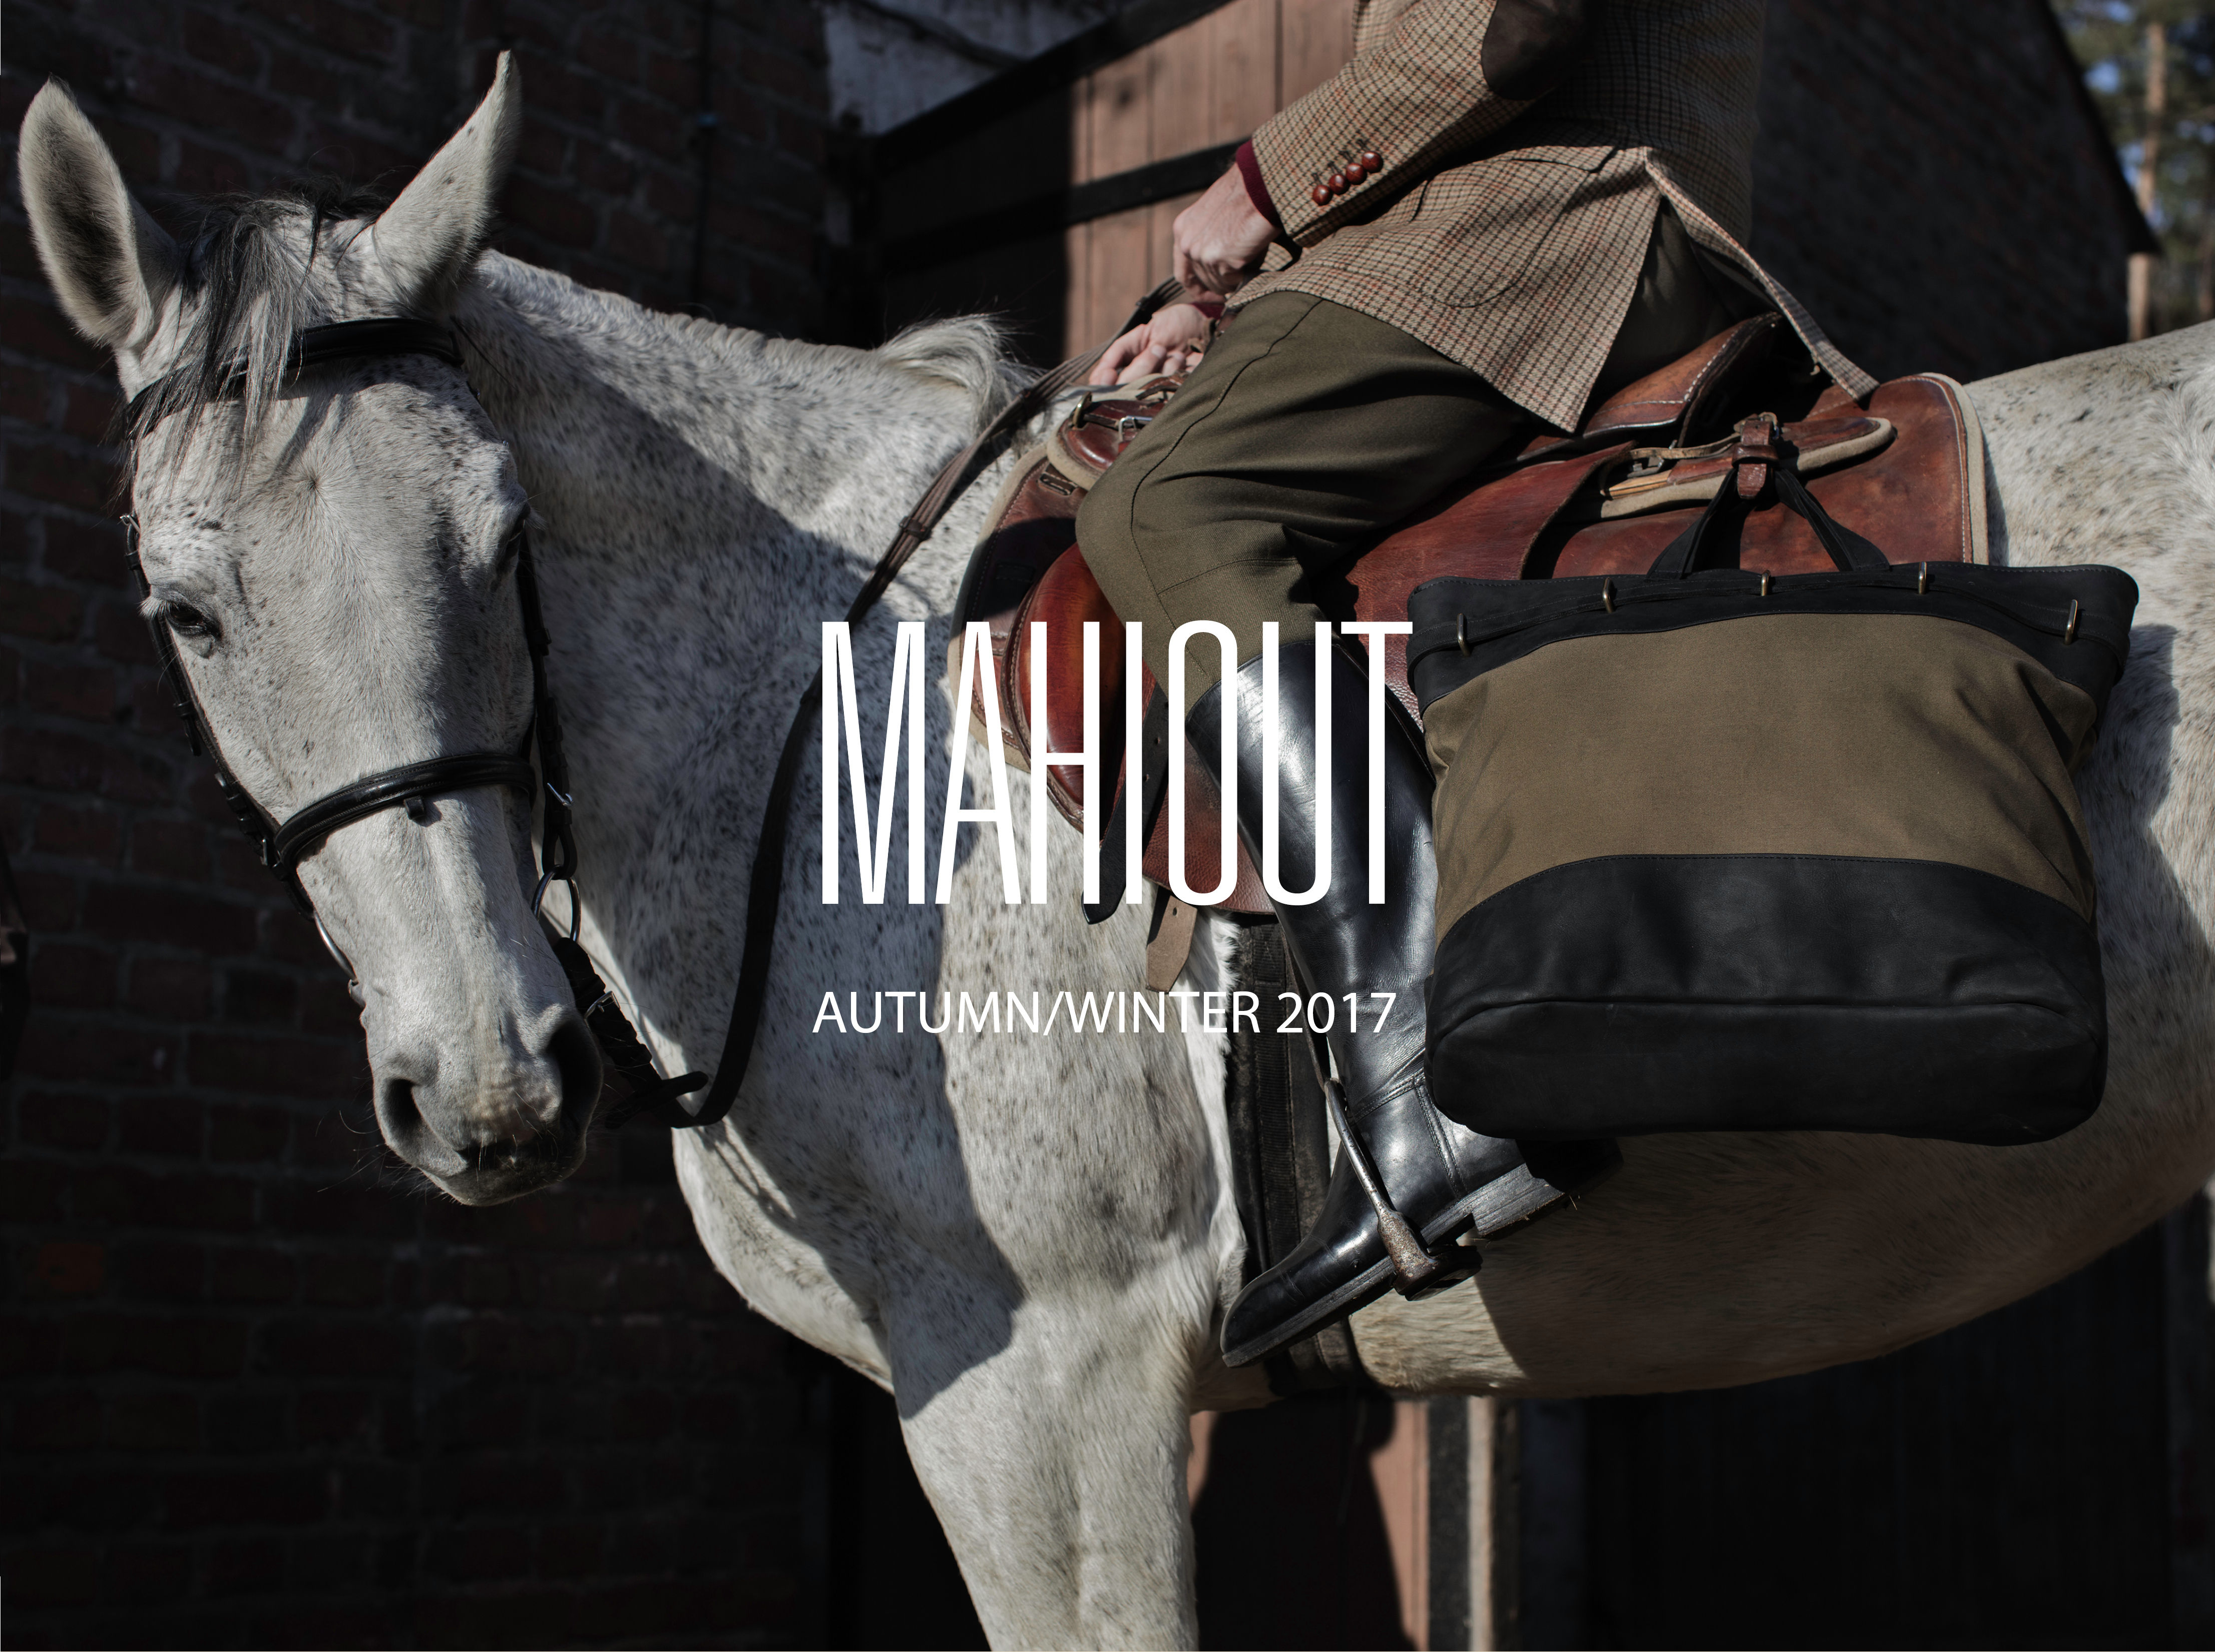 mahiout aw17 catalogue